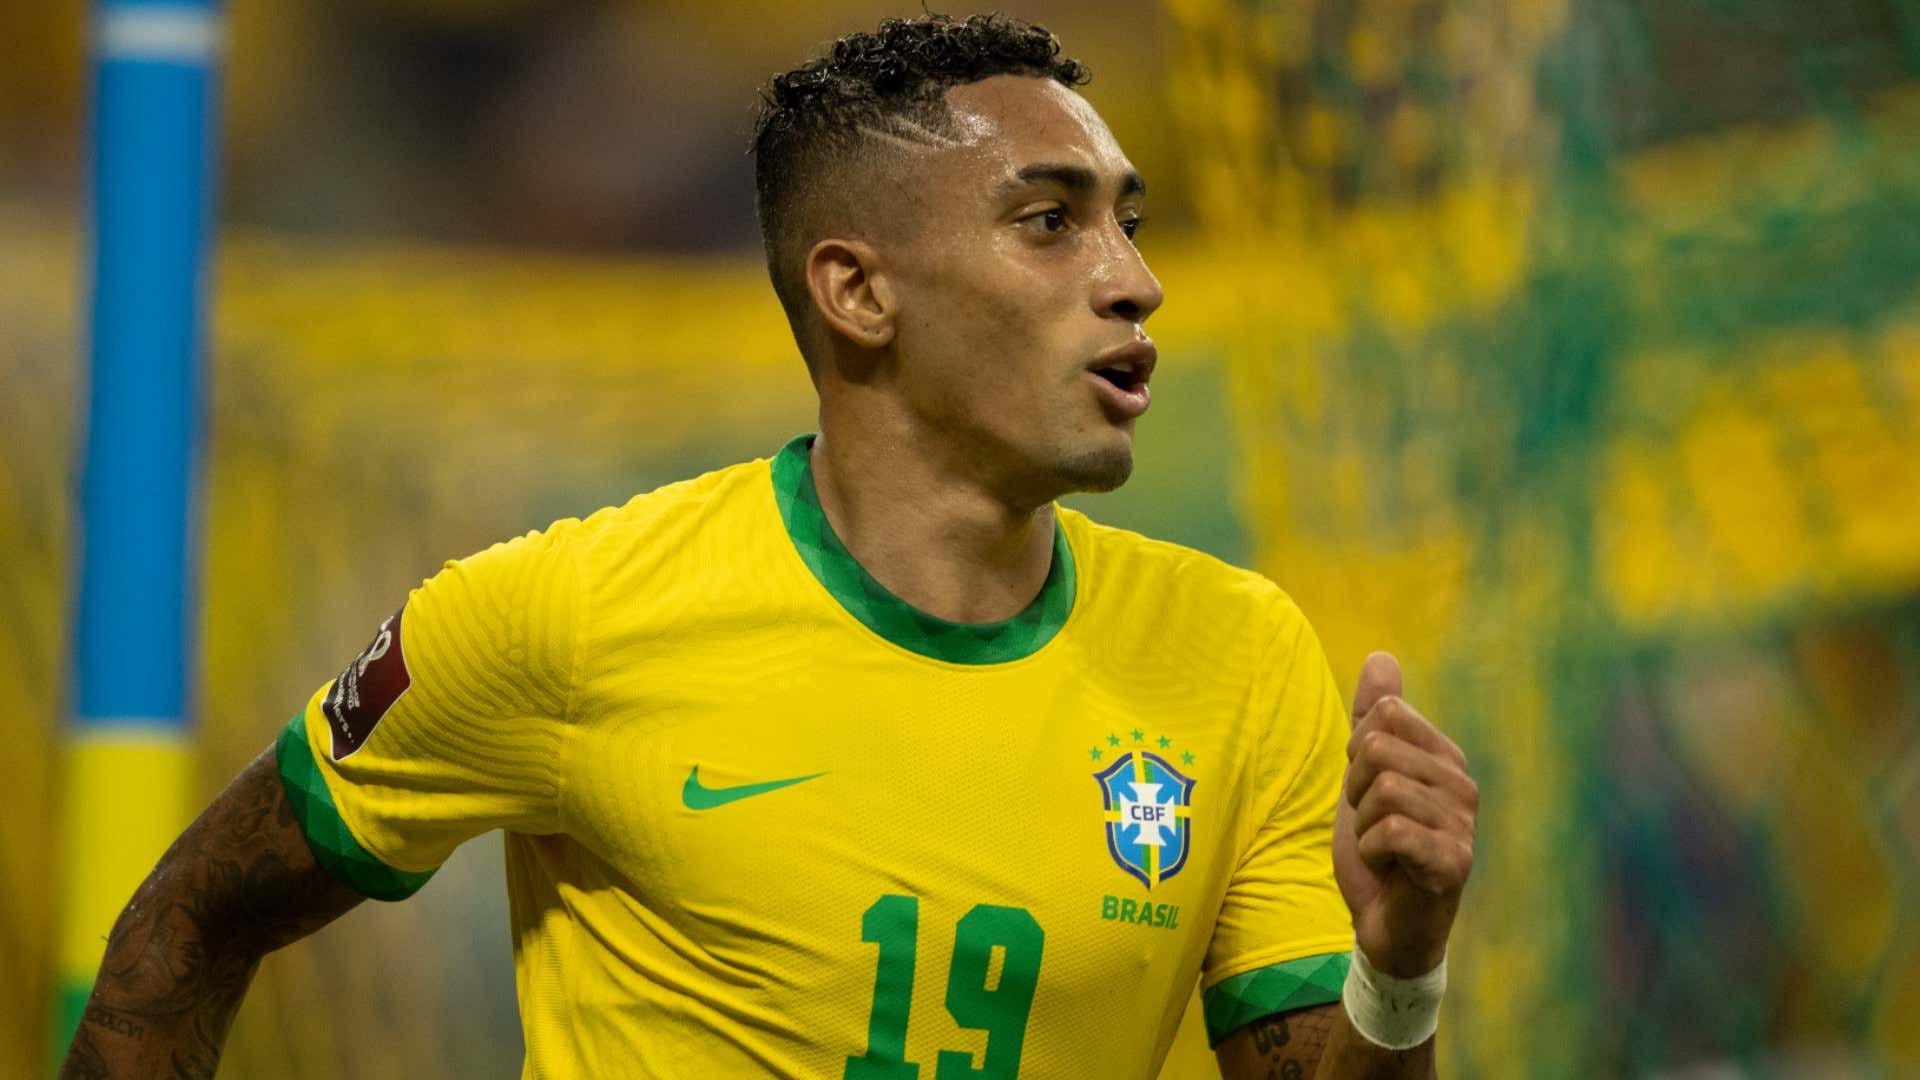 Mentored by Bielsa and wanted by Liverpool: How Raphinha became Brazil's new golden boy | Goal.com